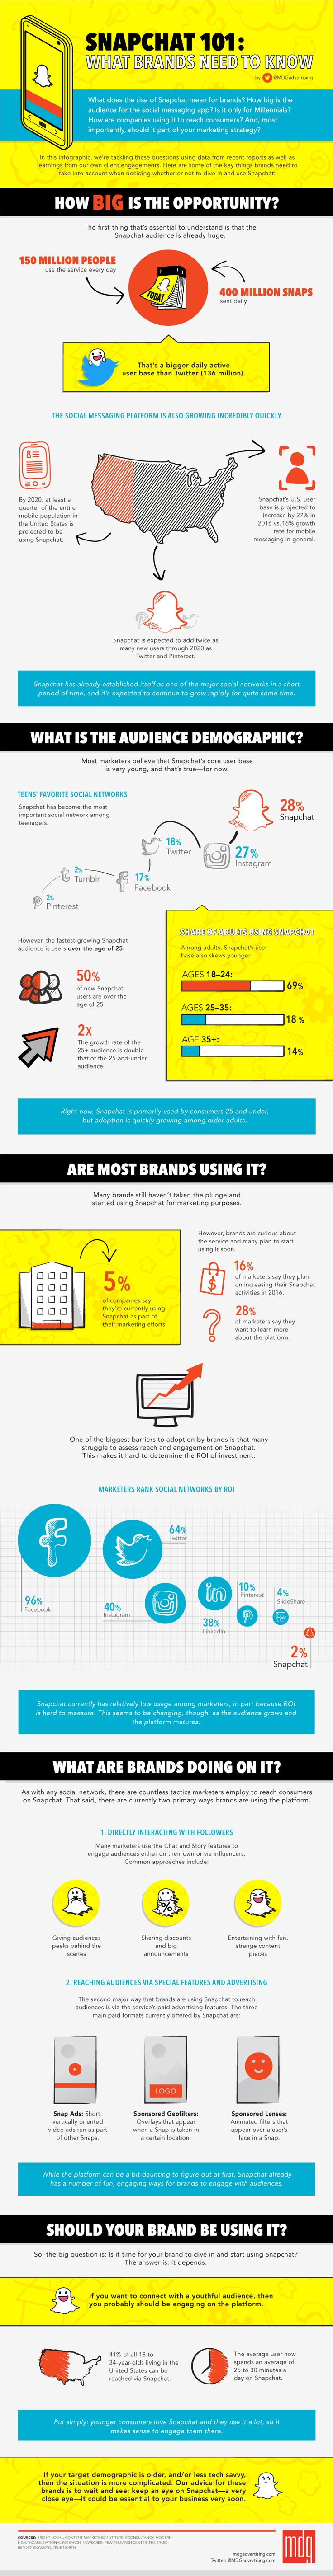 Snapchat For Business: What You Must Know - Snapchat for business? - It's the latest promotion phenomenon to hit social media. This infographic will tell you why you need to tap into this channel. - #infographic